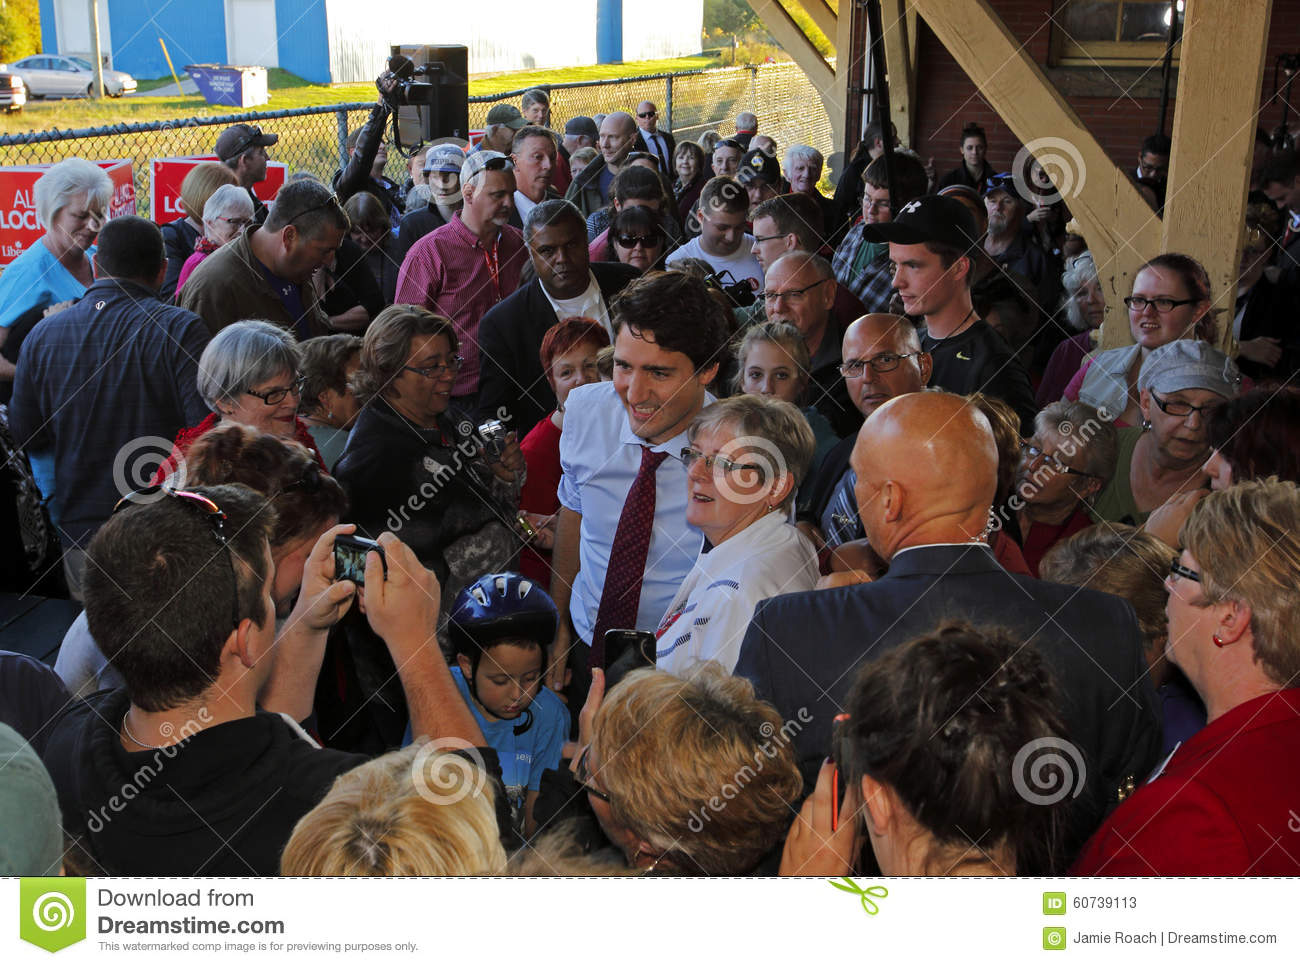 Justin Trudeau Sussex Crowd Election